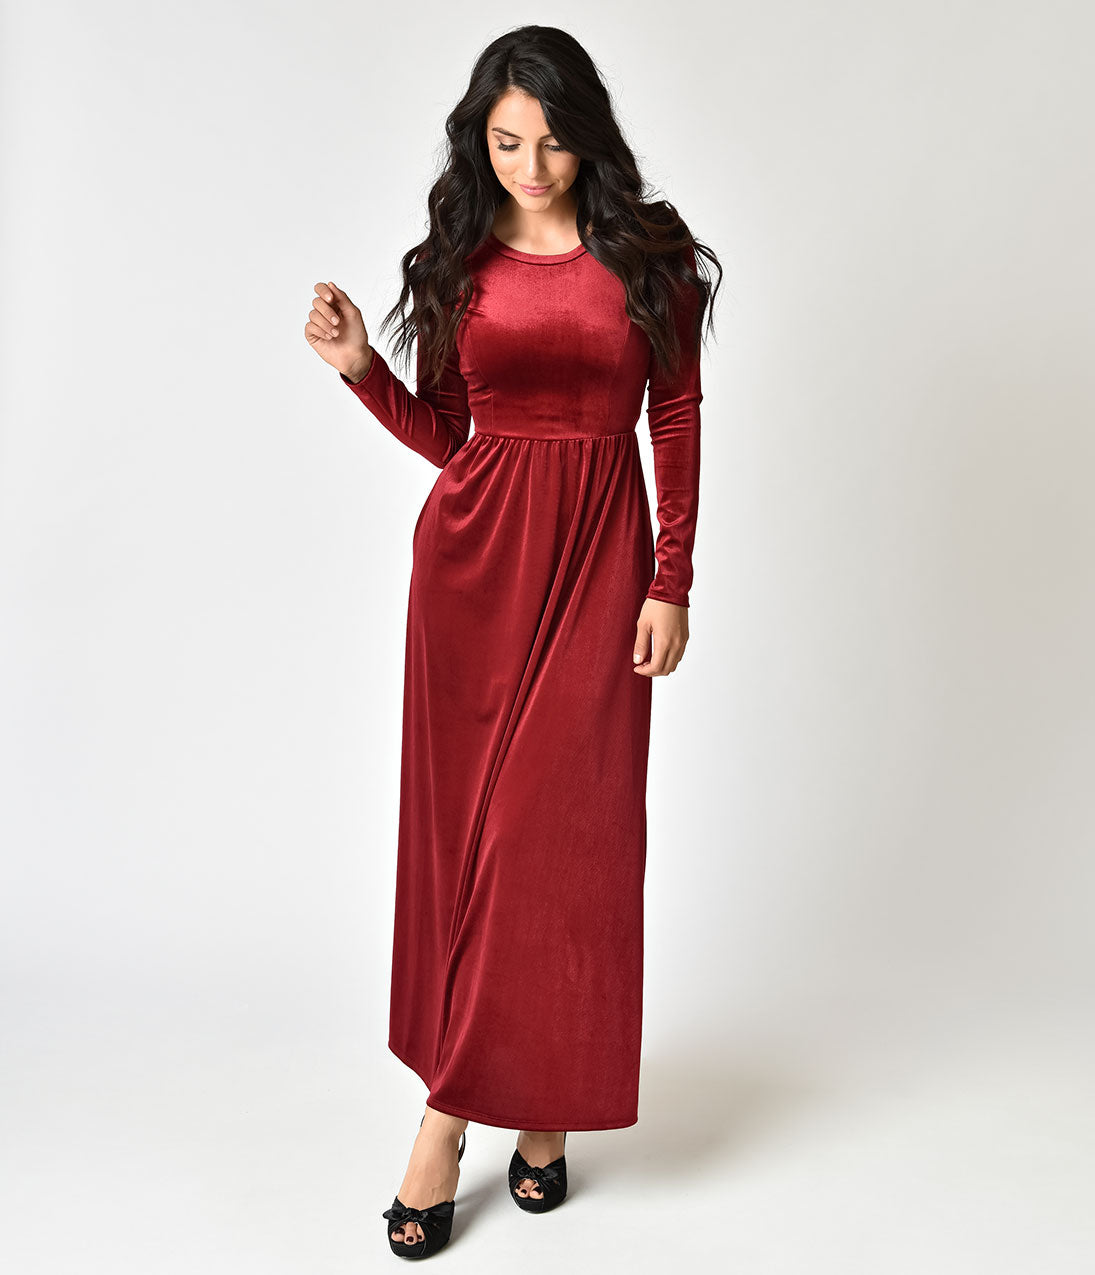 1940s Evening, Prom, Party, Cocktail Dresses & Ball Gowns Vintage Style Burgundy Velvet Long Sleeve Midi Dress $46.00 AT vintagedancer.com